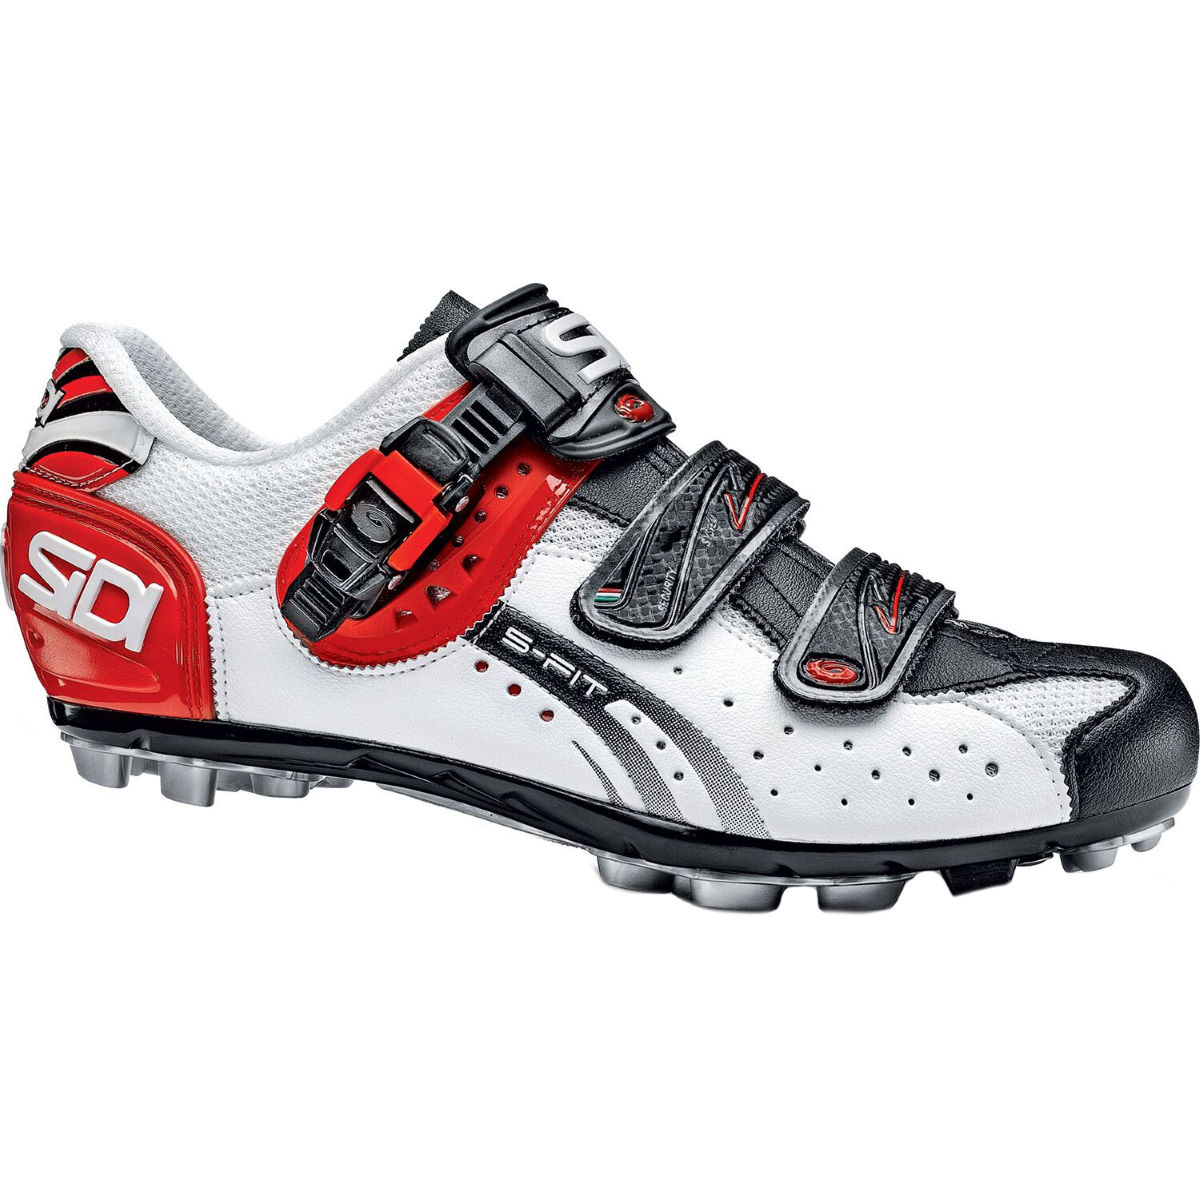 Chaussures VTT Sidi Eagle 5-Fit - 38 White/Black/Red